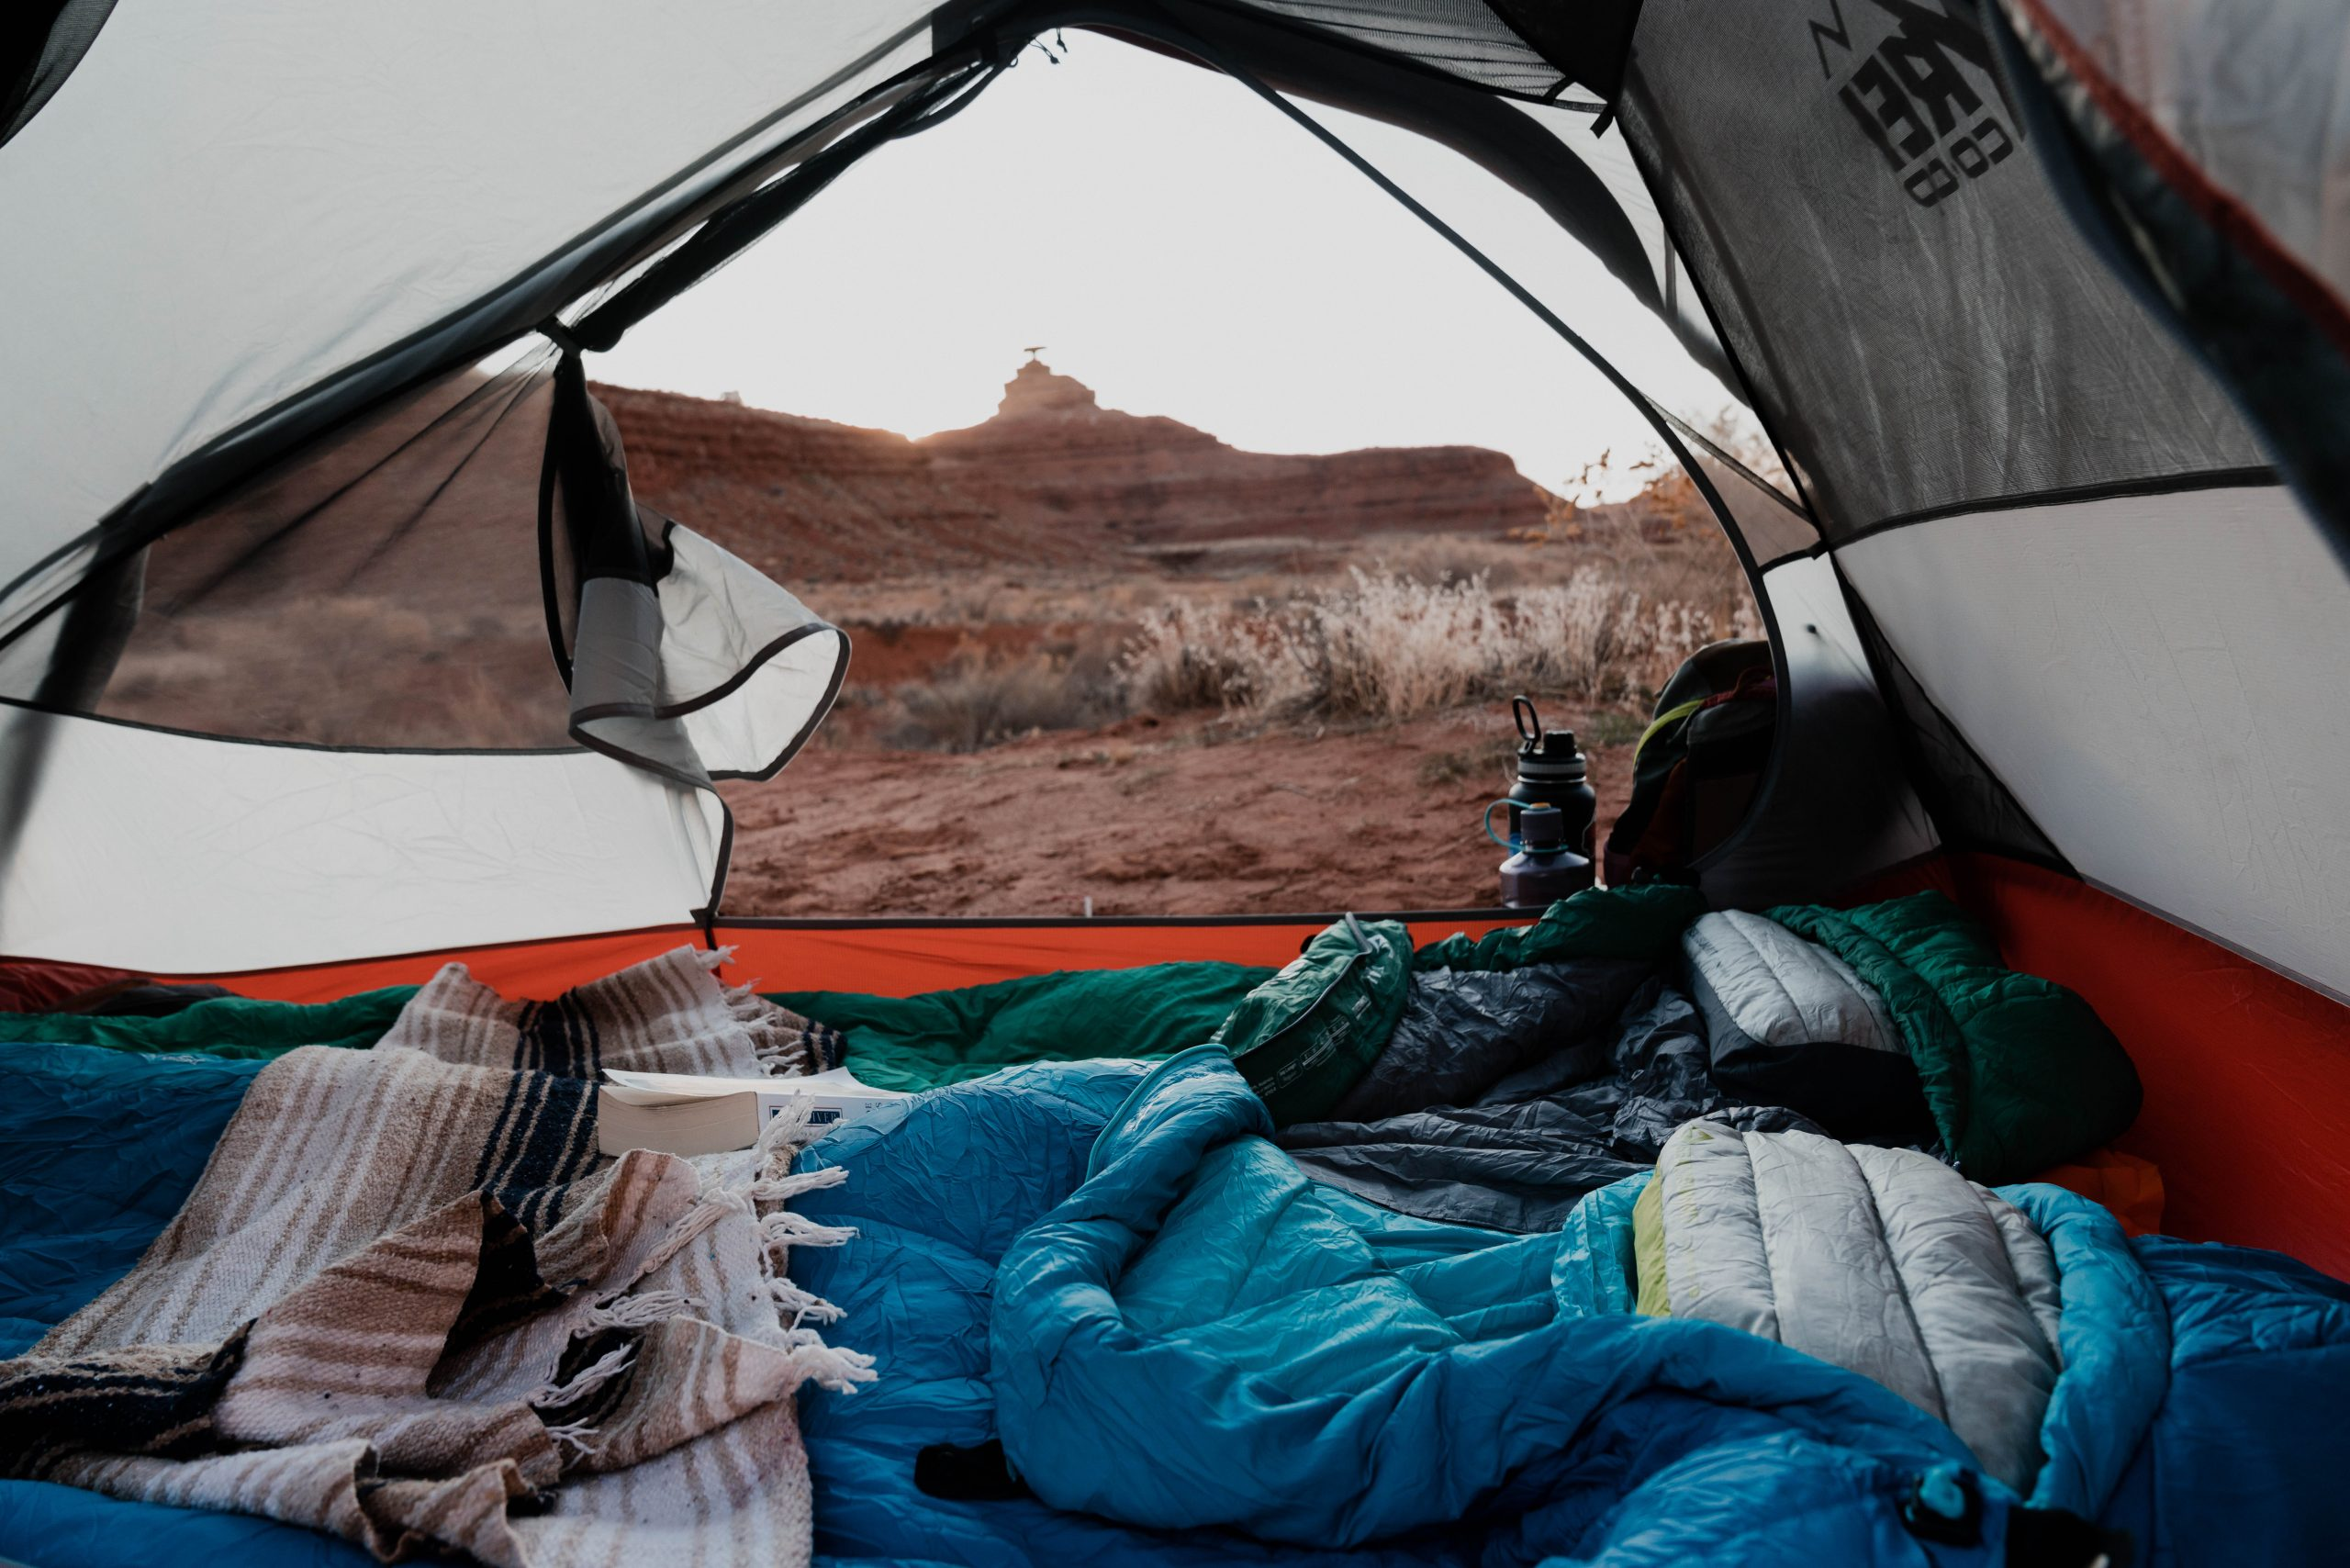 Sea to Summit inflatable pillows in tent with scenic desert background.